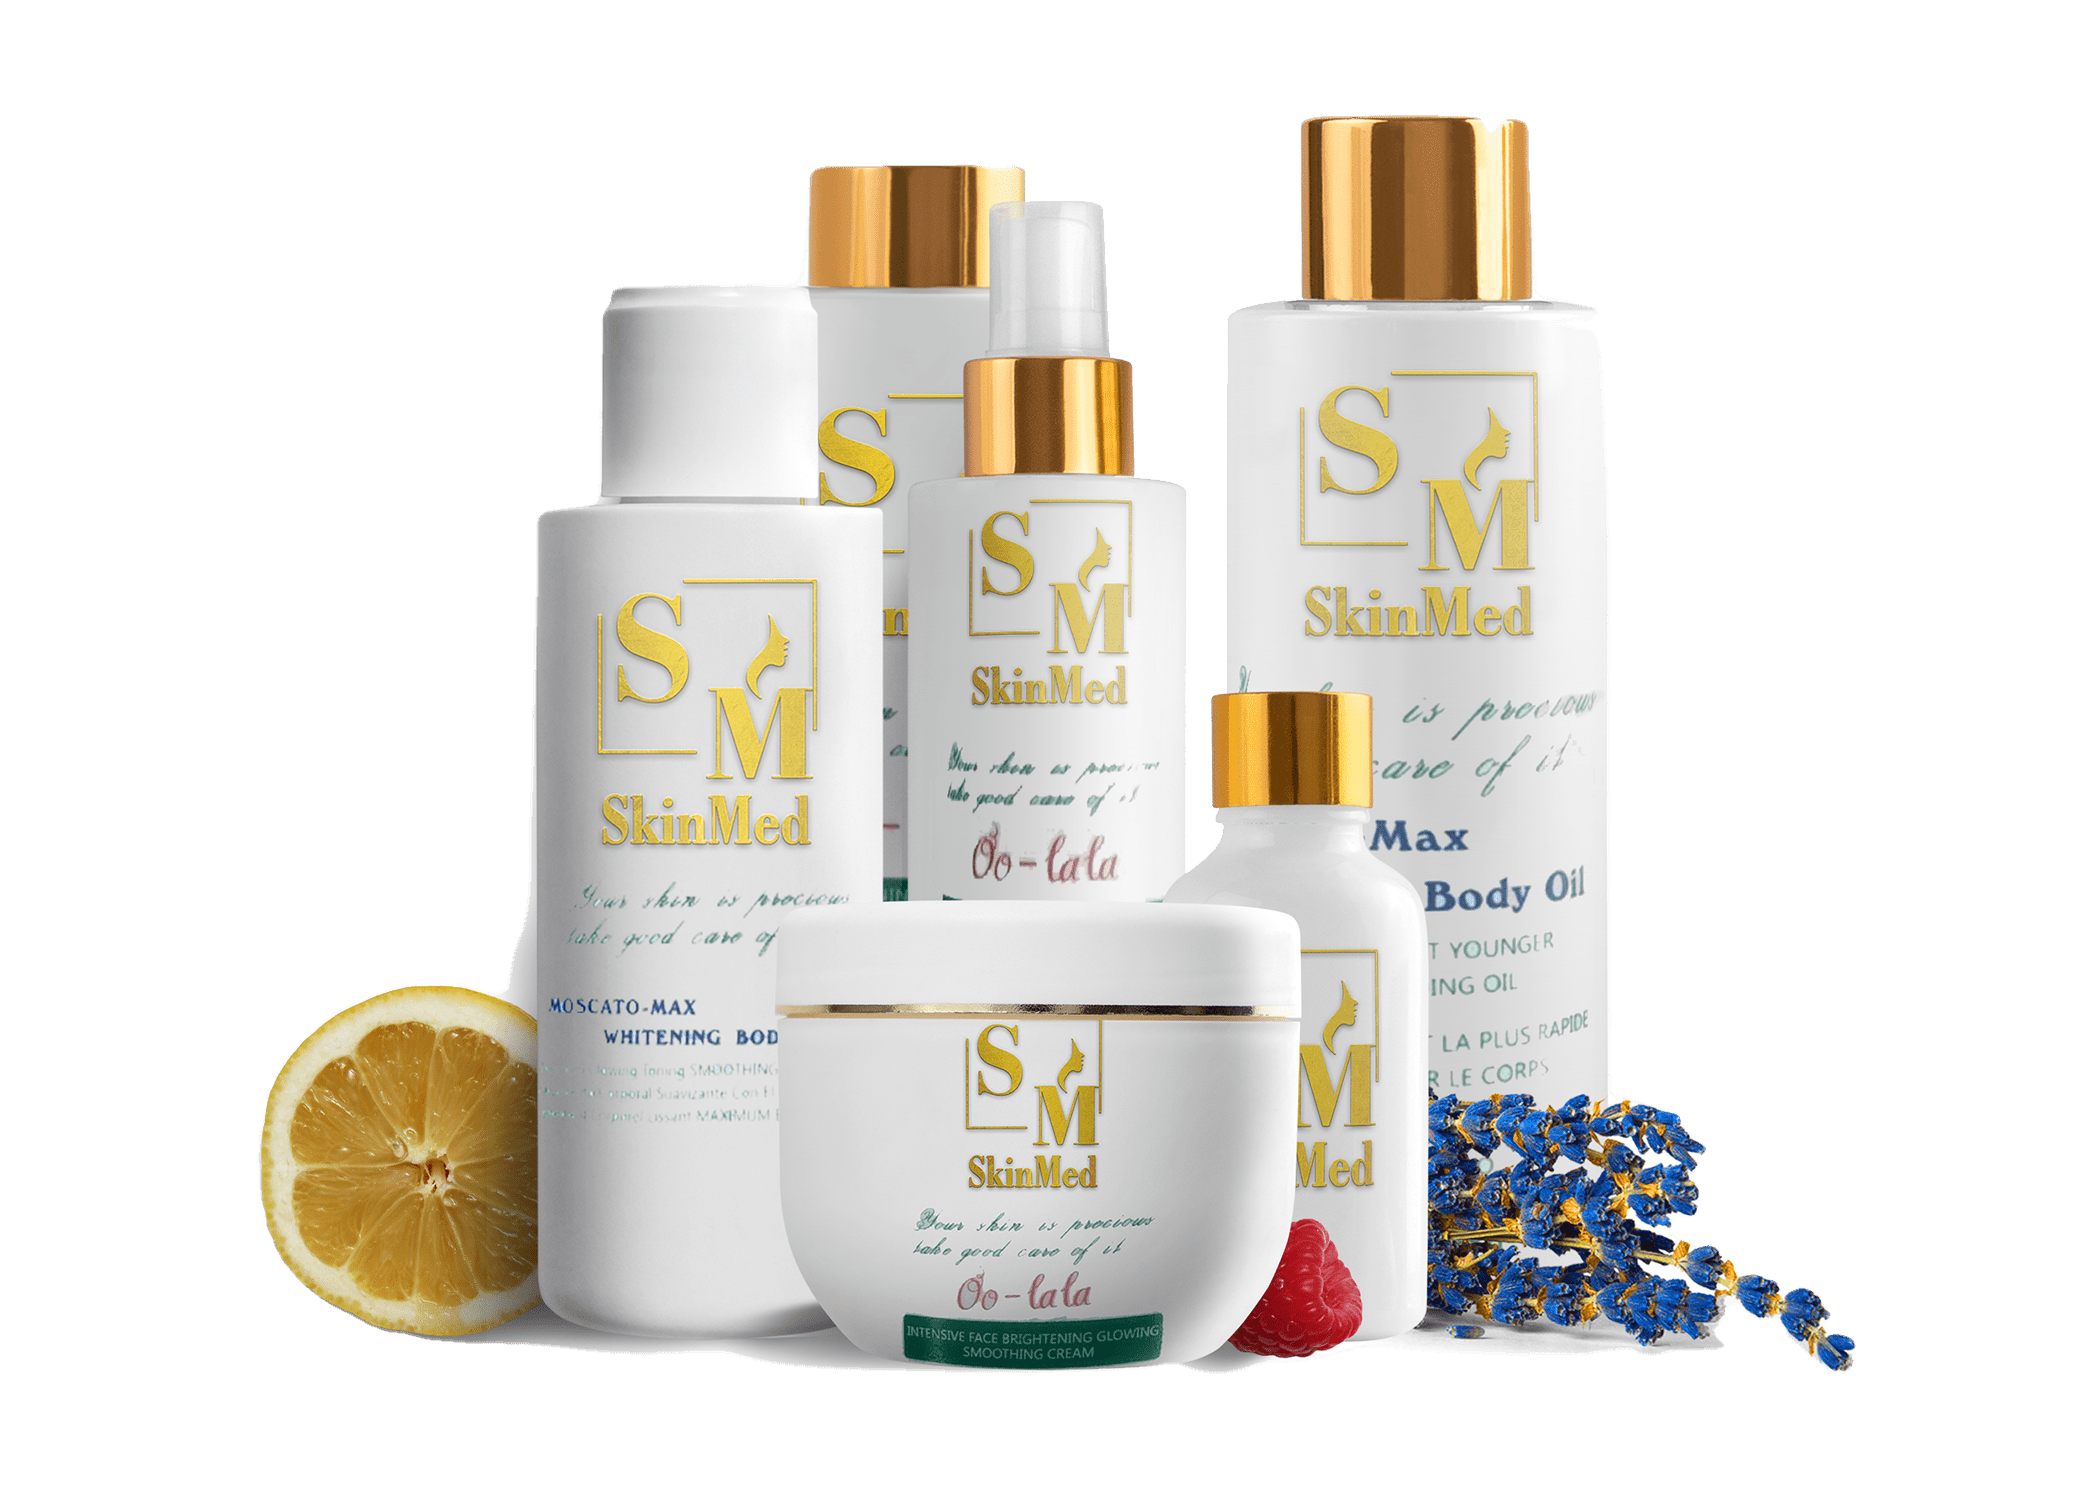 SKINMED COLLECTIONS